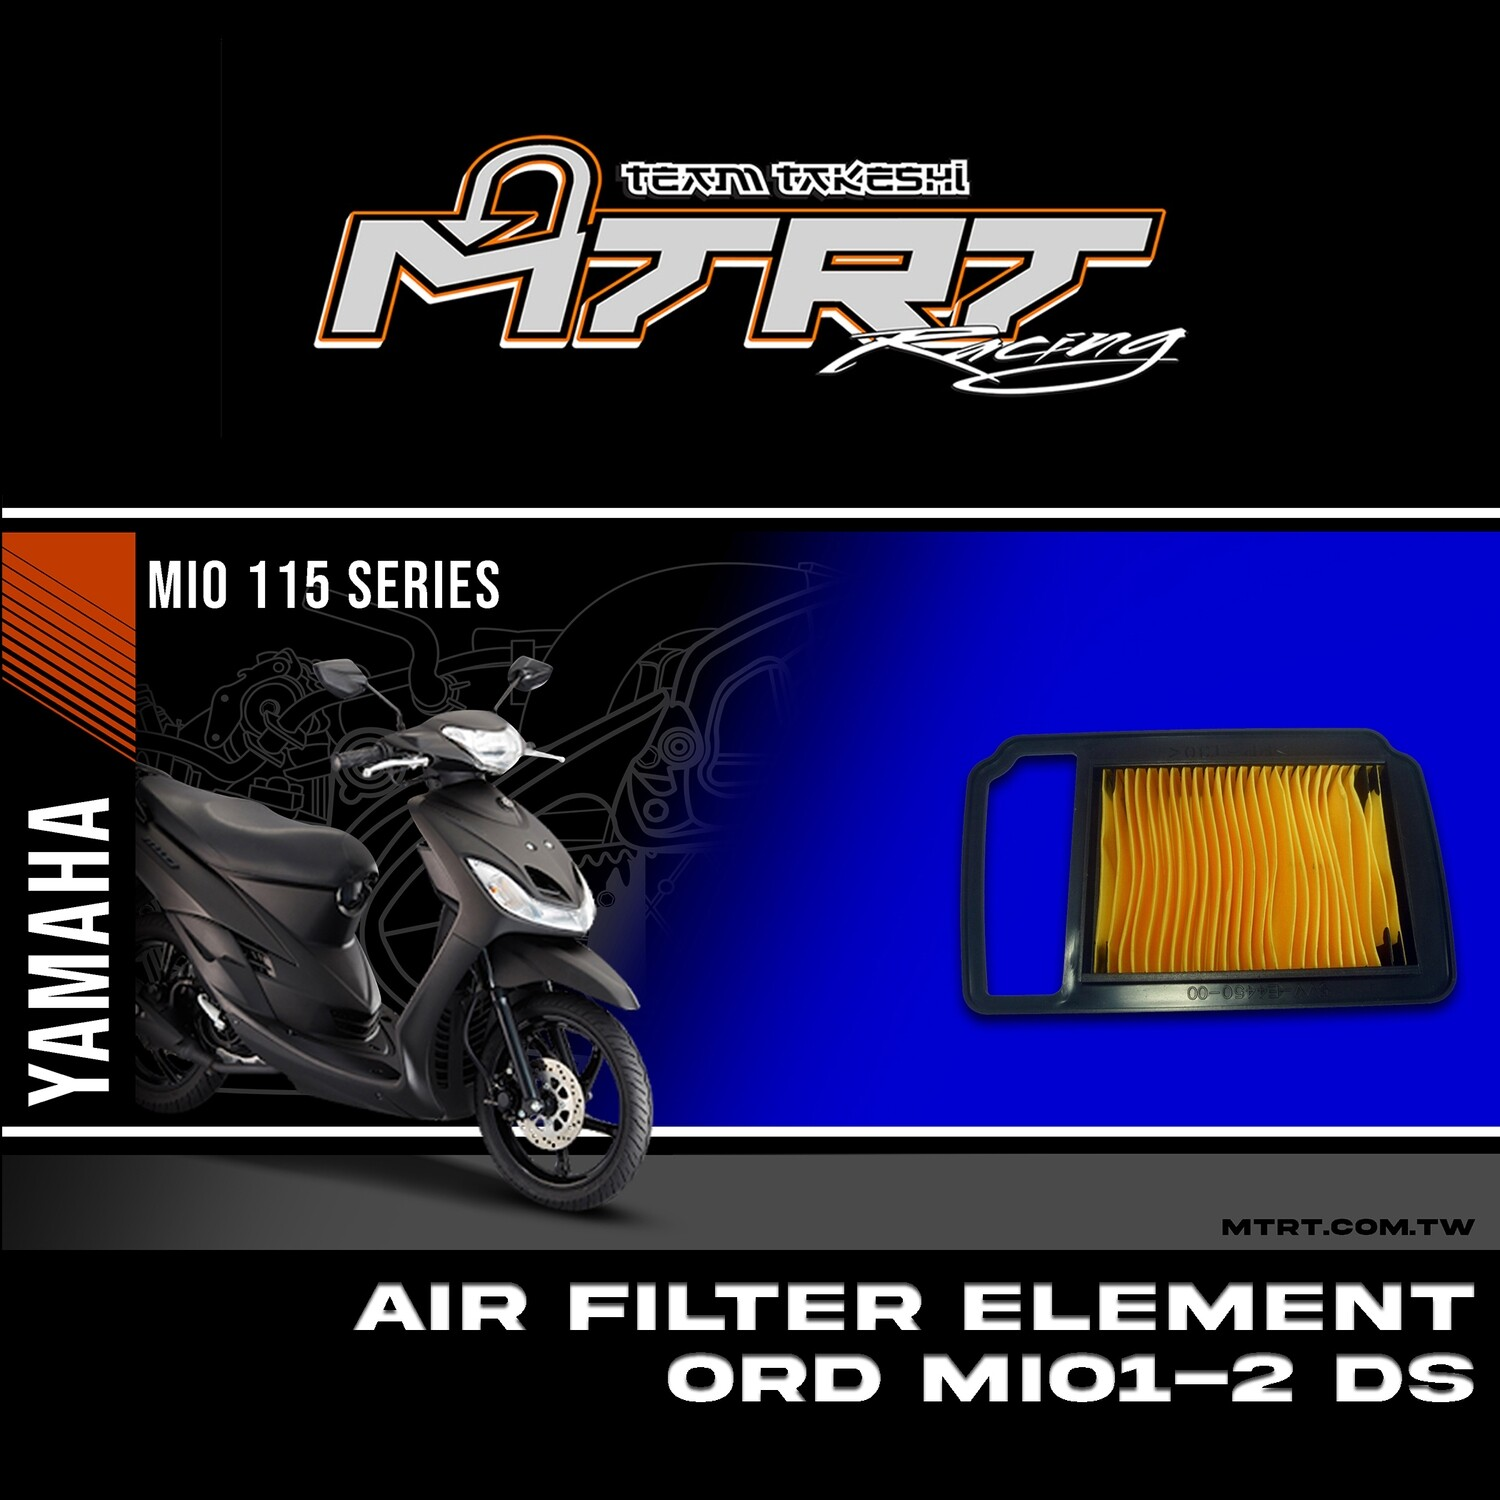 AIR FILTER ELEMENT ORD MIO1-2 DS